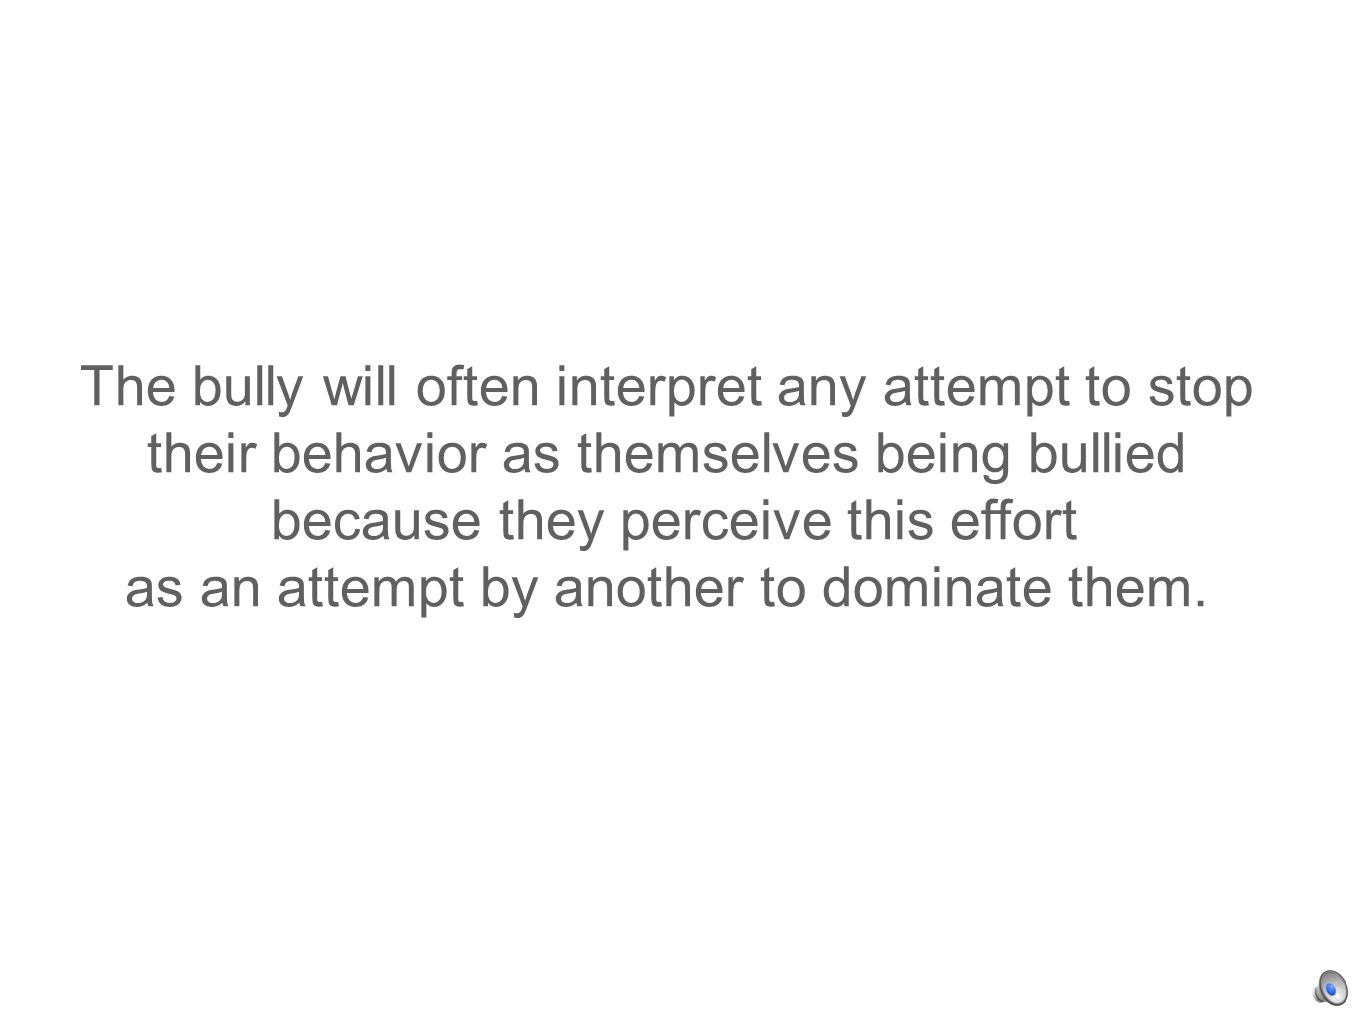 The bully will often interpret any attempt to stop their behavior as themselves being bullied because they perceive this effort as an attempt by another to dominate them.